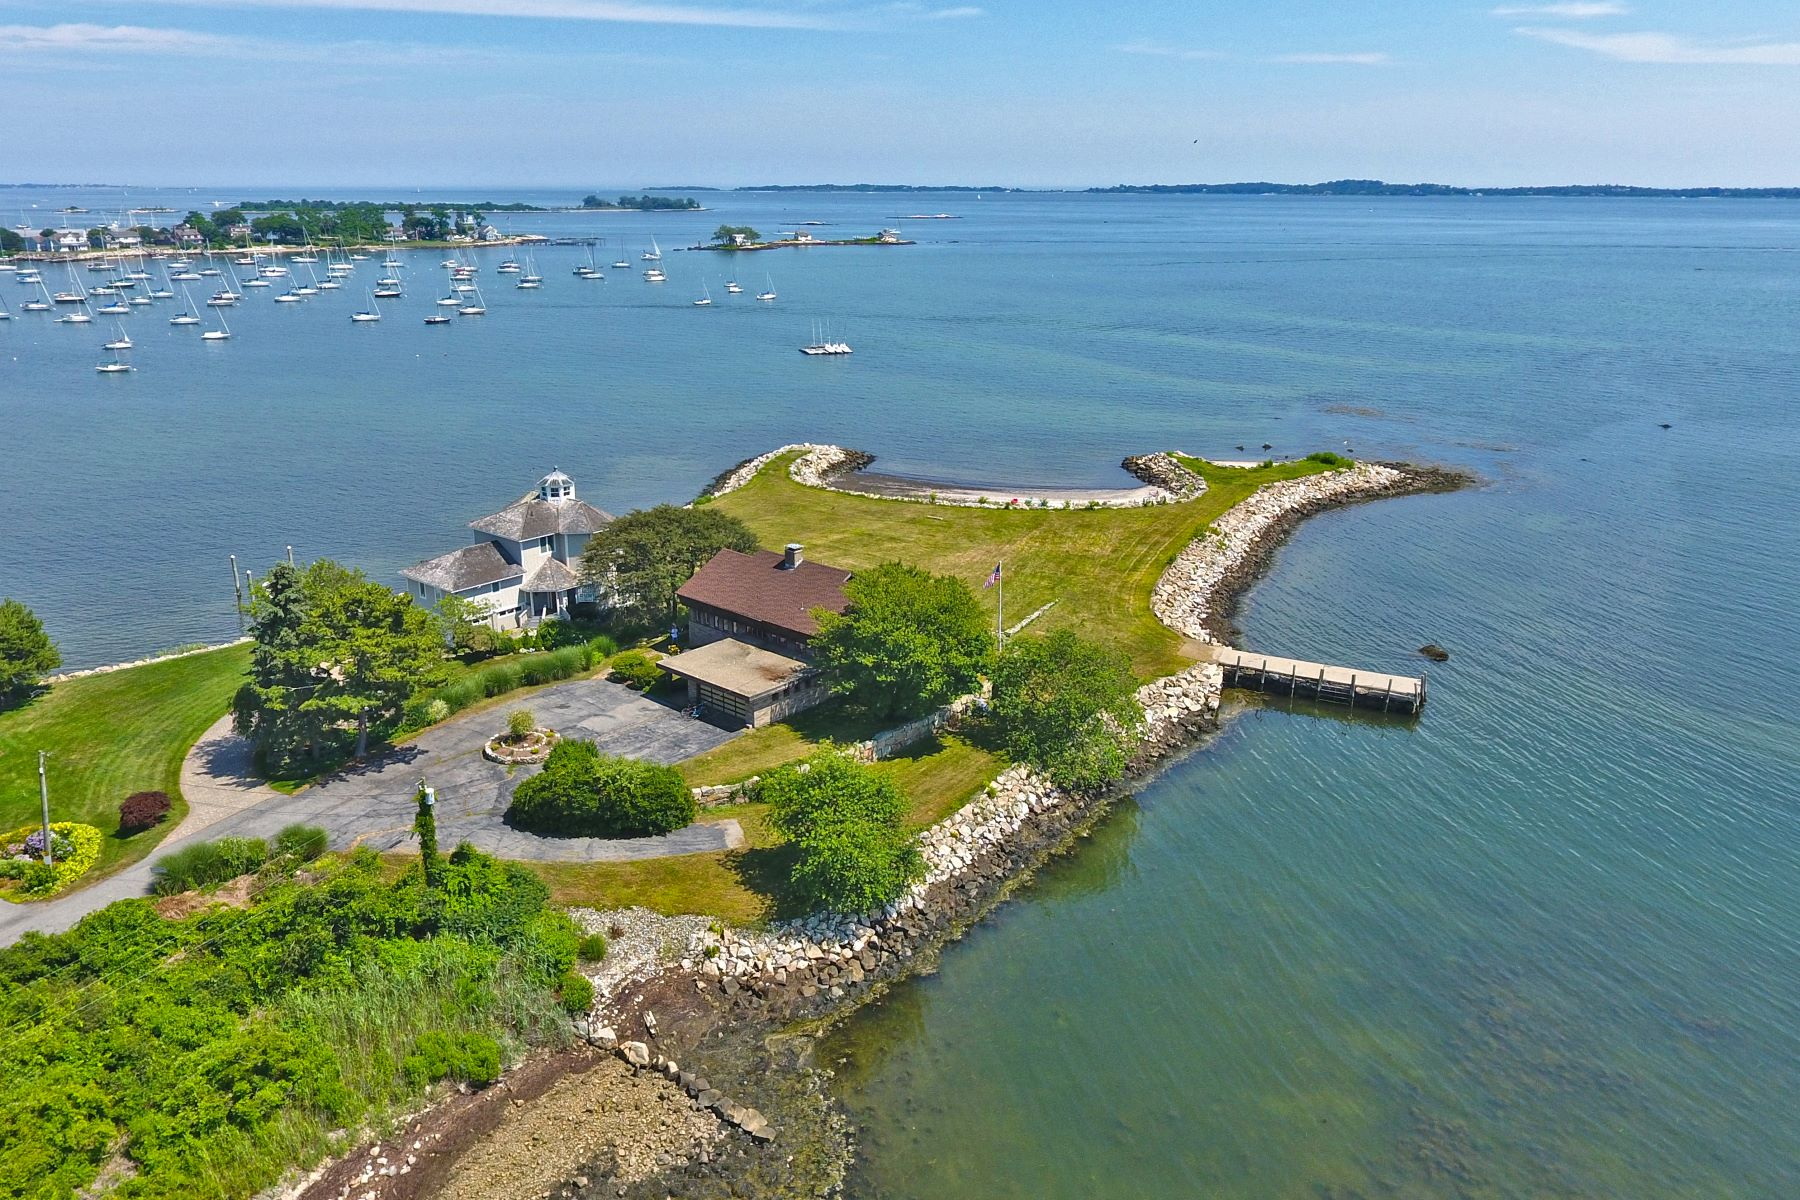 Single Family Home for Sale at Waterfront Sanctuary 940 Groton Long Point Road Groton, Connecticut 06340 United States